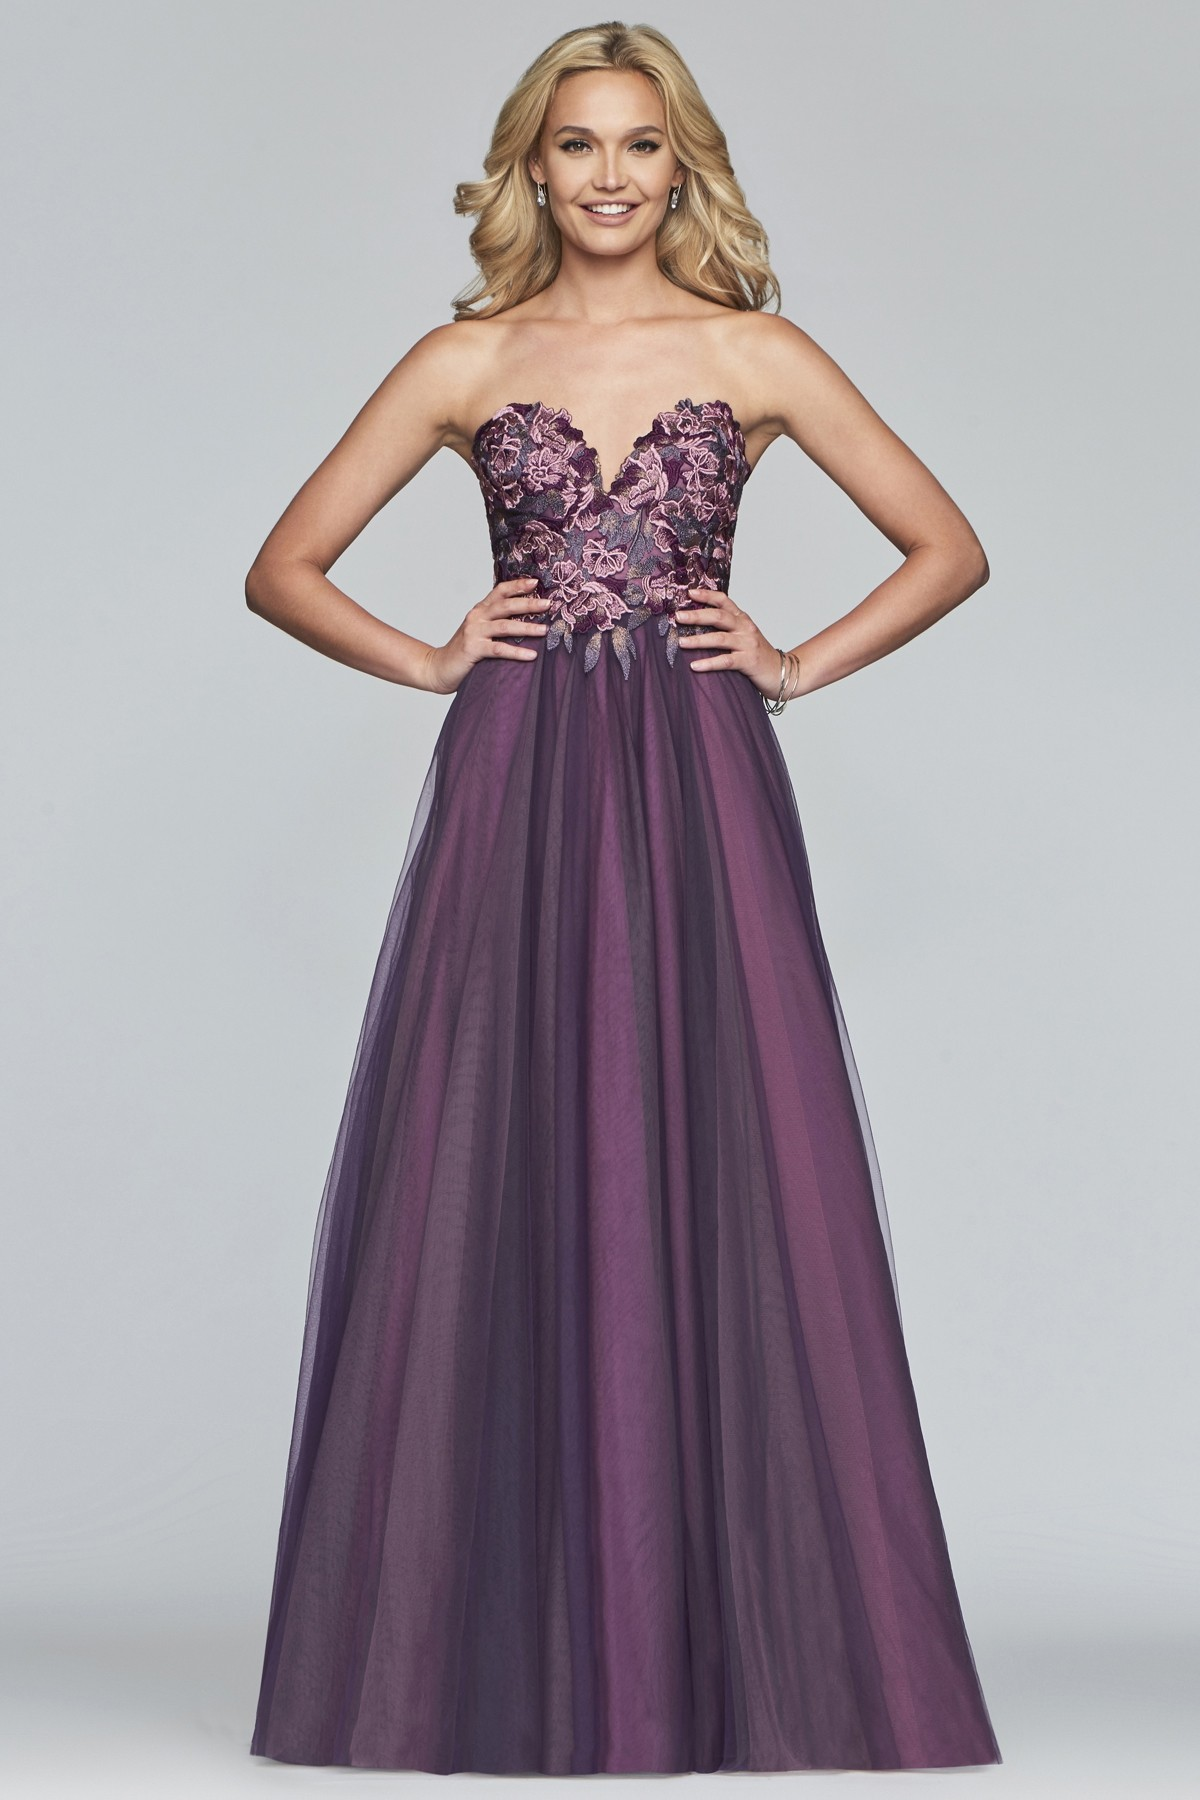 52dc09689661 Faviana S10023 Strapless Flower Adorned Ball Gown | RissyRoos.com